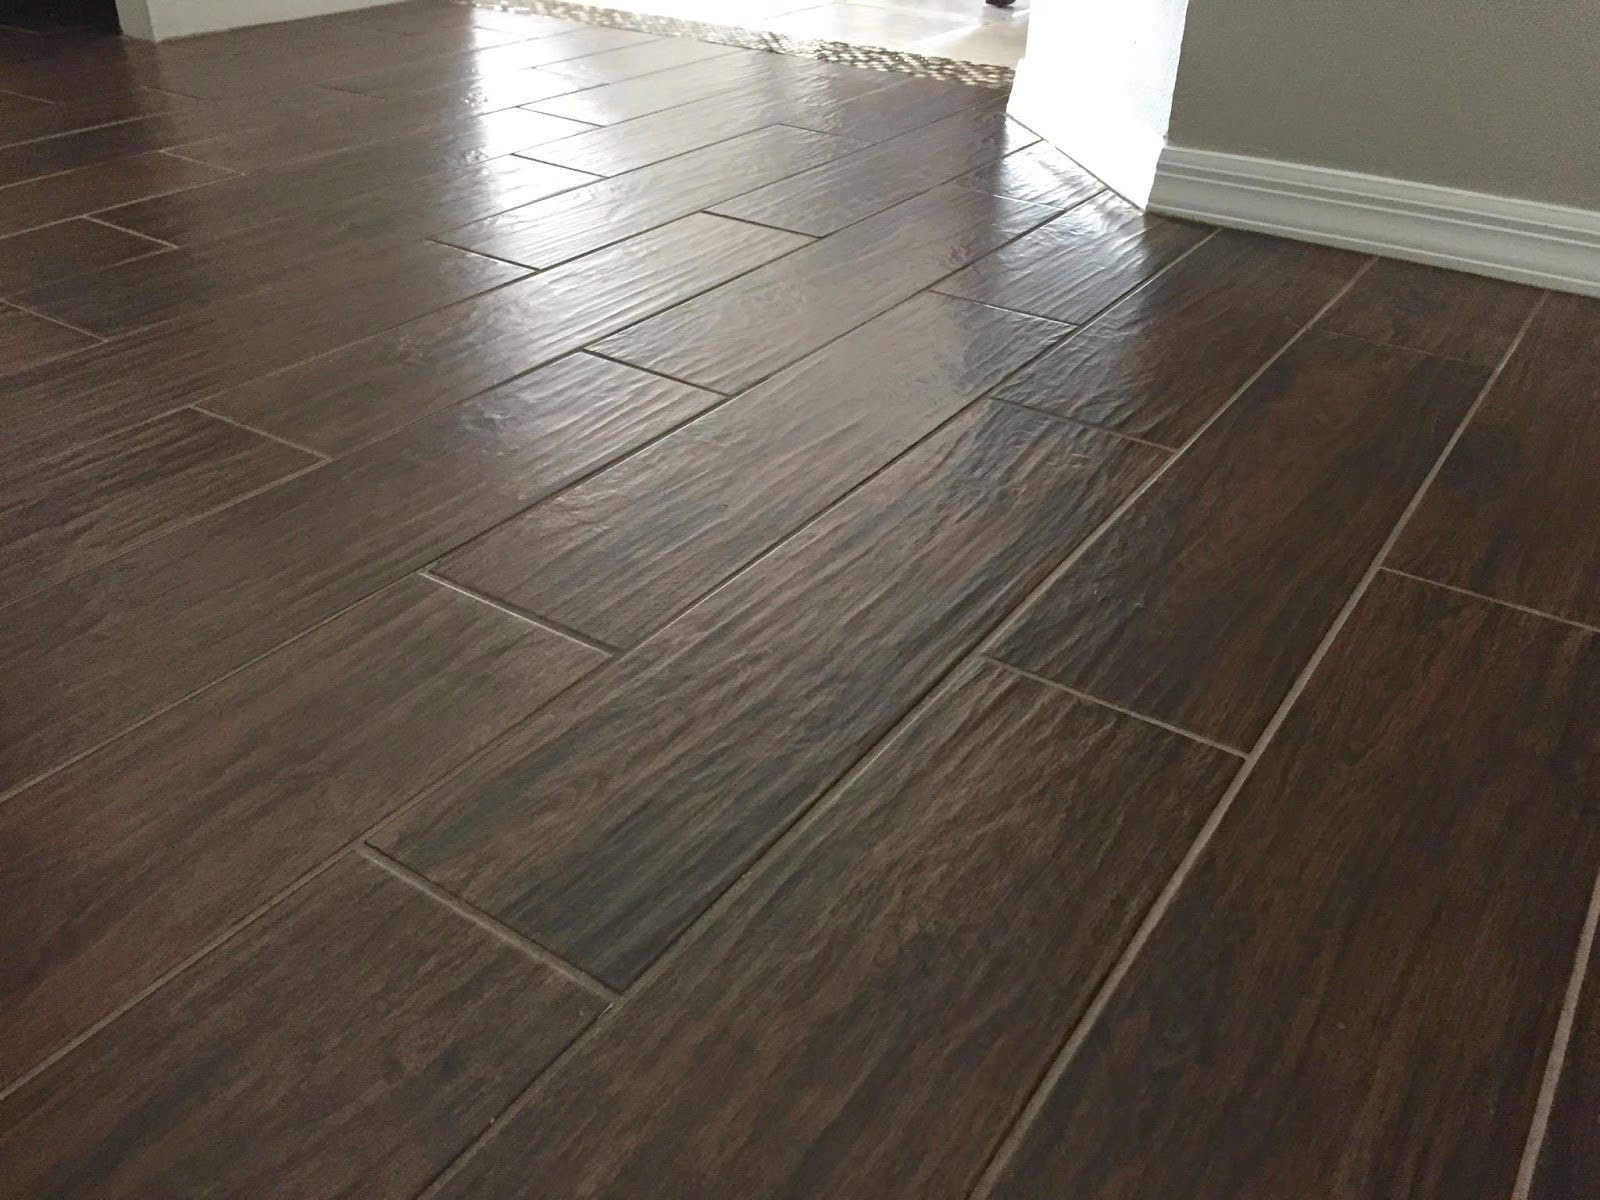 wooden floor texture flooring floor pinterest battle cry ...